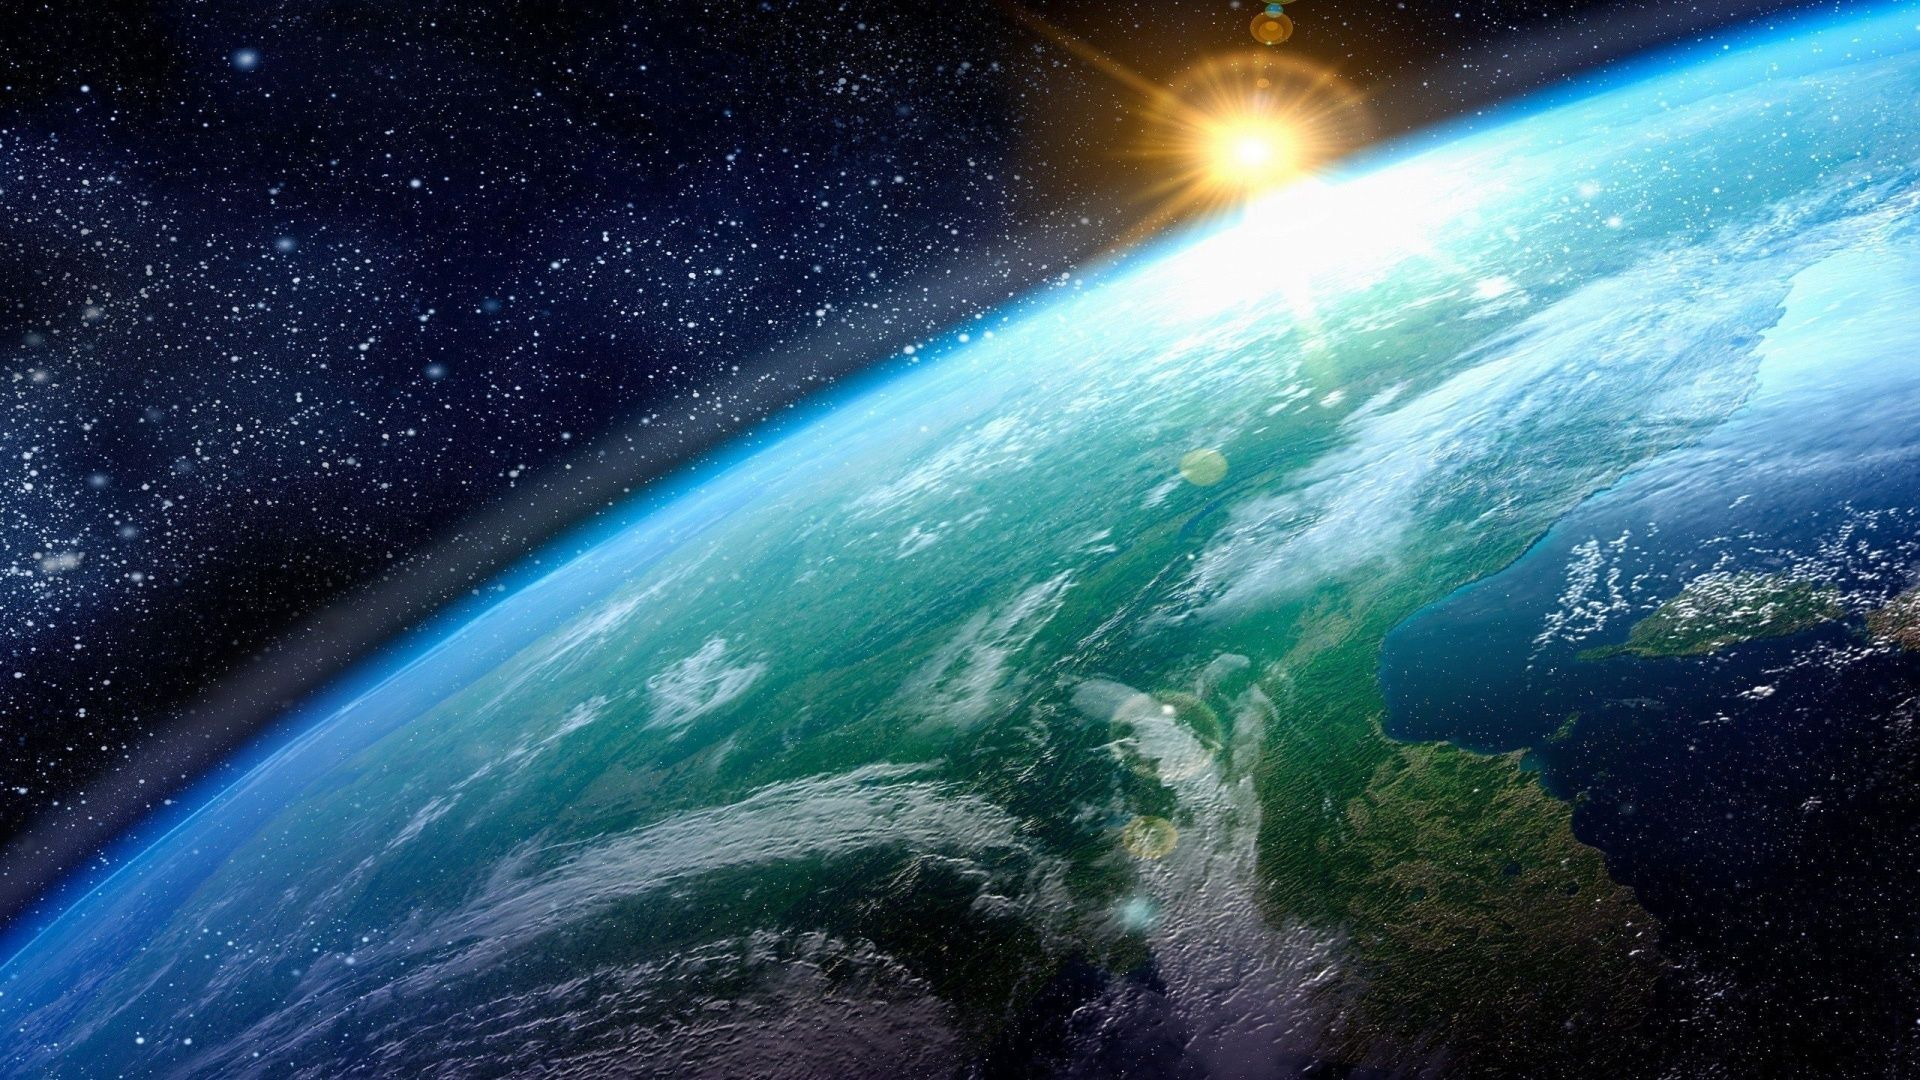 Space hd wallpapers 2 space hd wallpapers pinterest hd space hd wallpapers 2 voltagebd Images